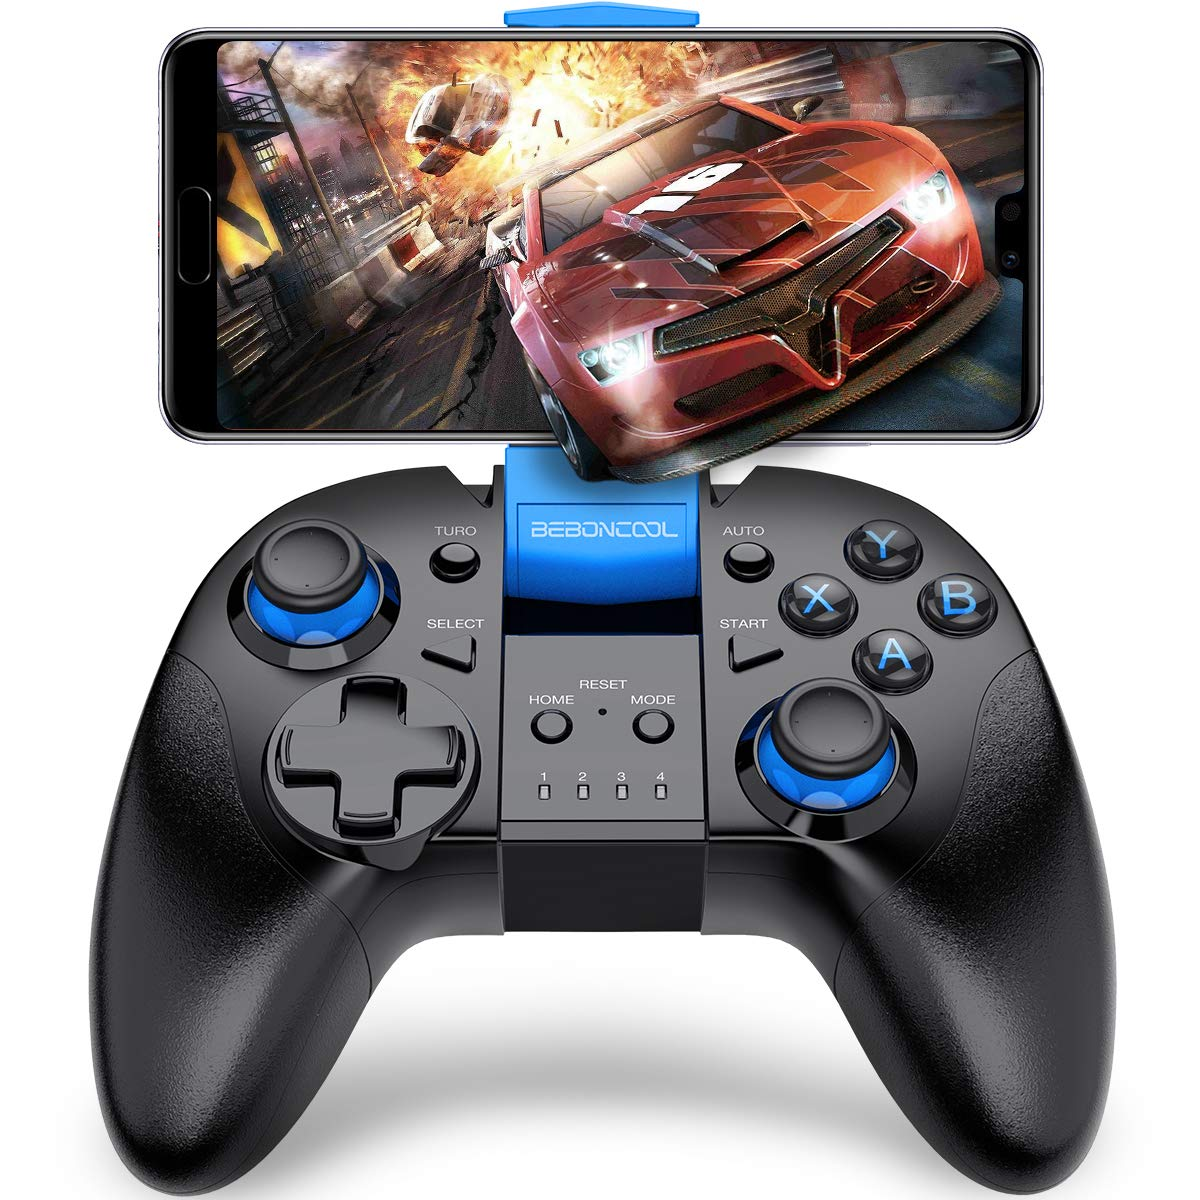 Wireless Game Controller, BEBONCOOL Android Controller Works with  Bluetooth, Android Gamepad Supports Samsung Gear VR/Android Phone/Tablet/TV